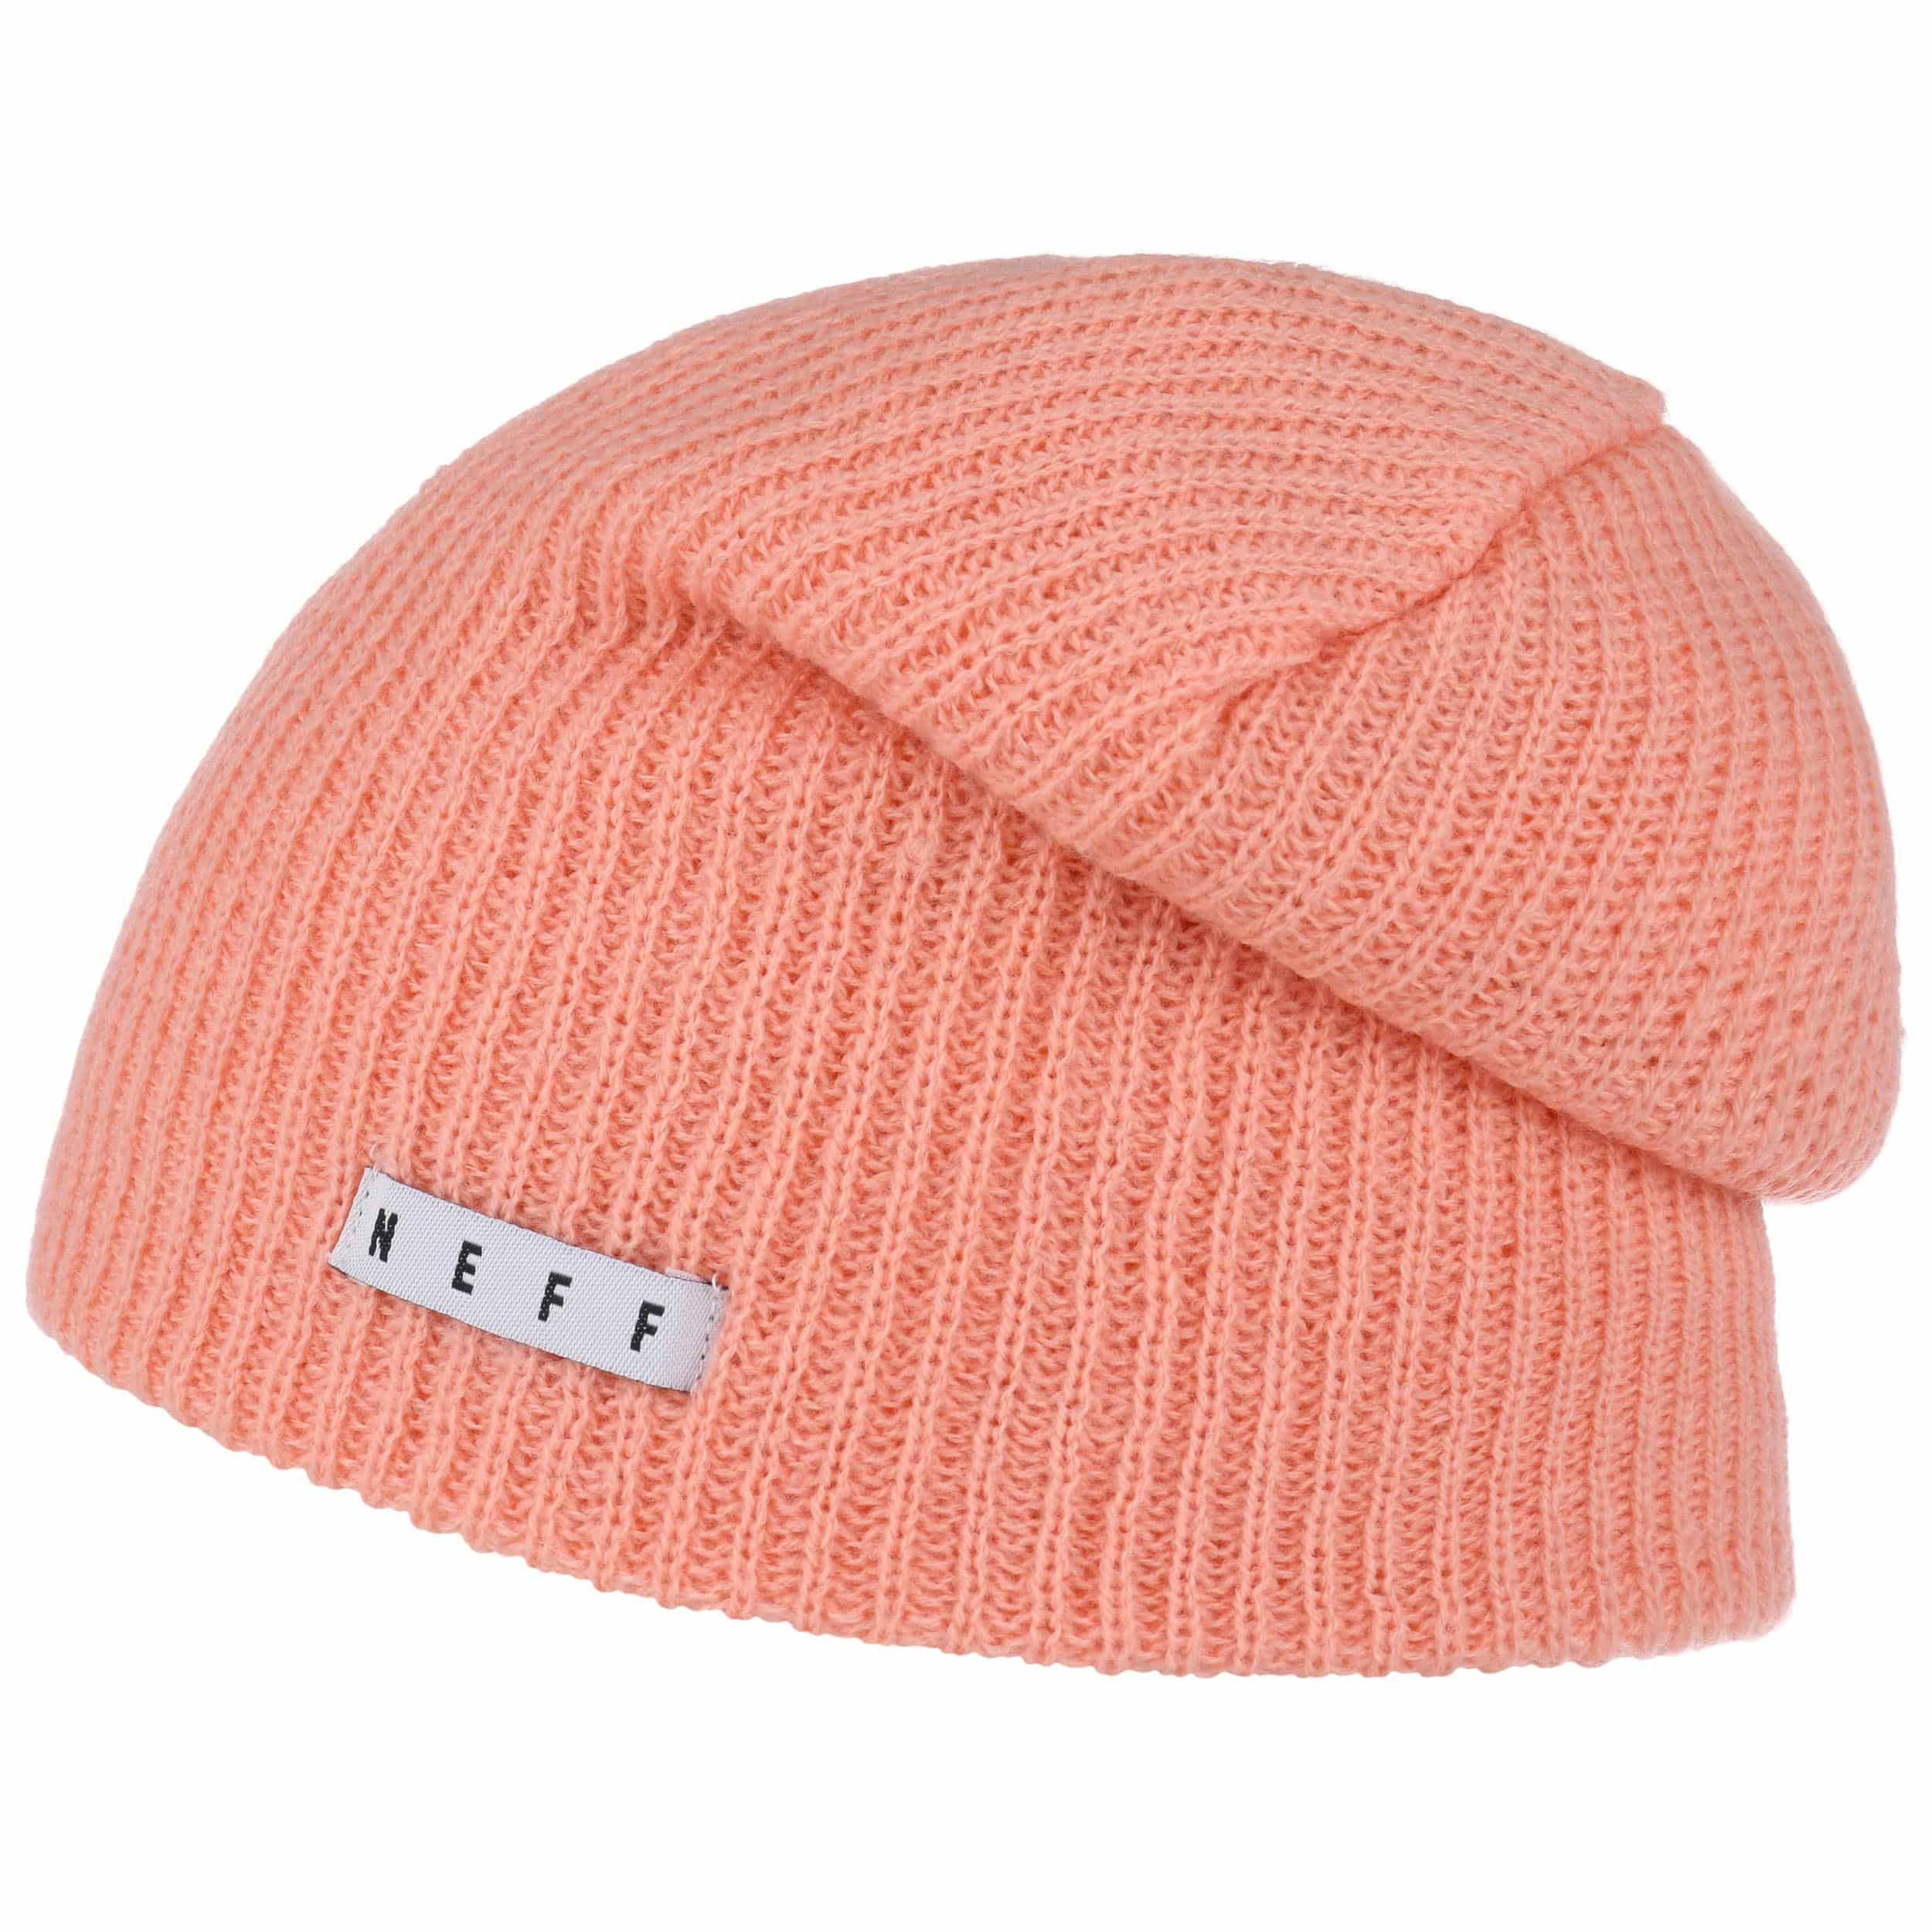 ... Daily Beanie by neff - apricot 4 ... 85ed96a5f00